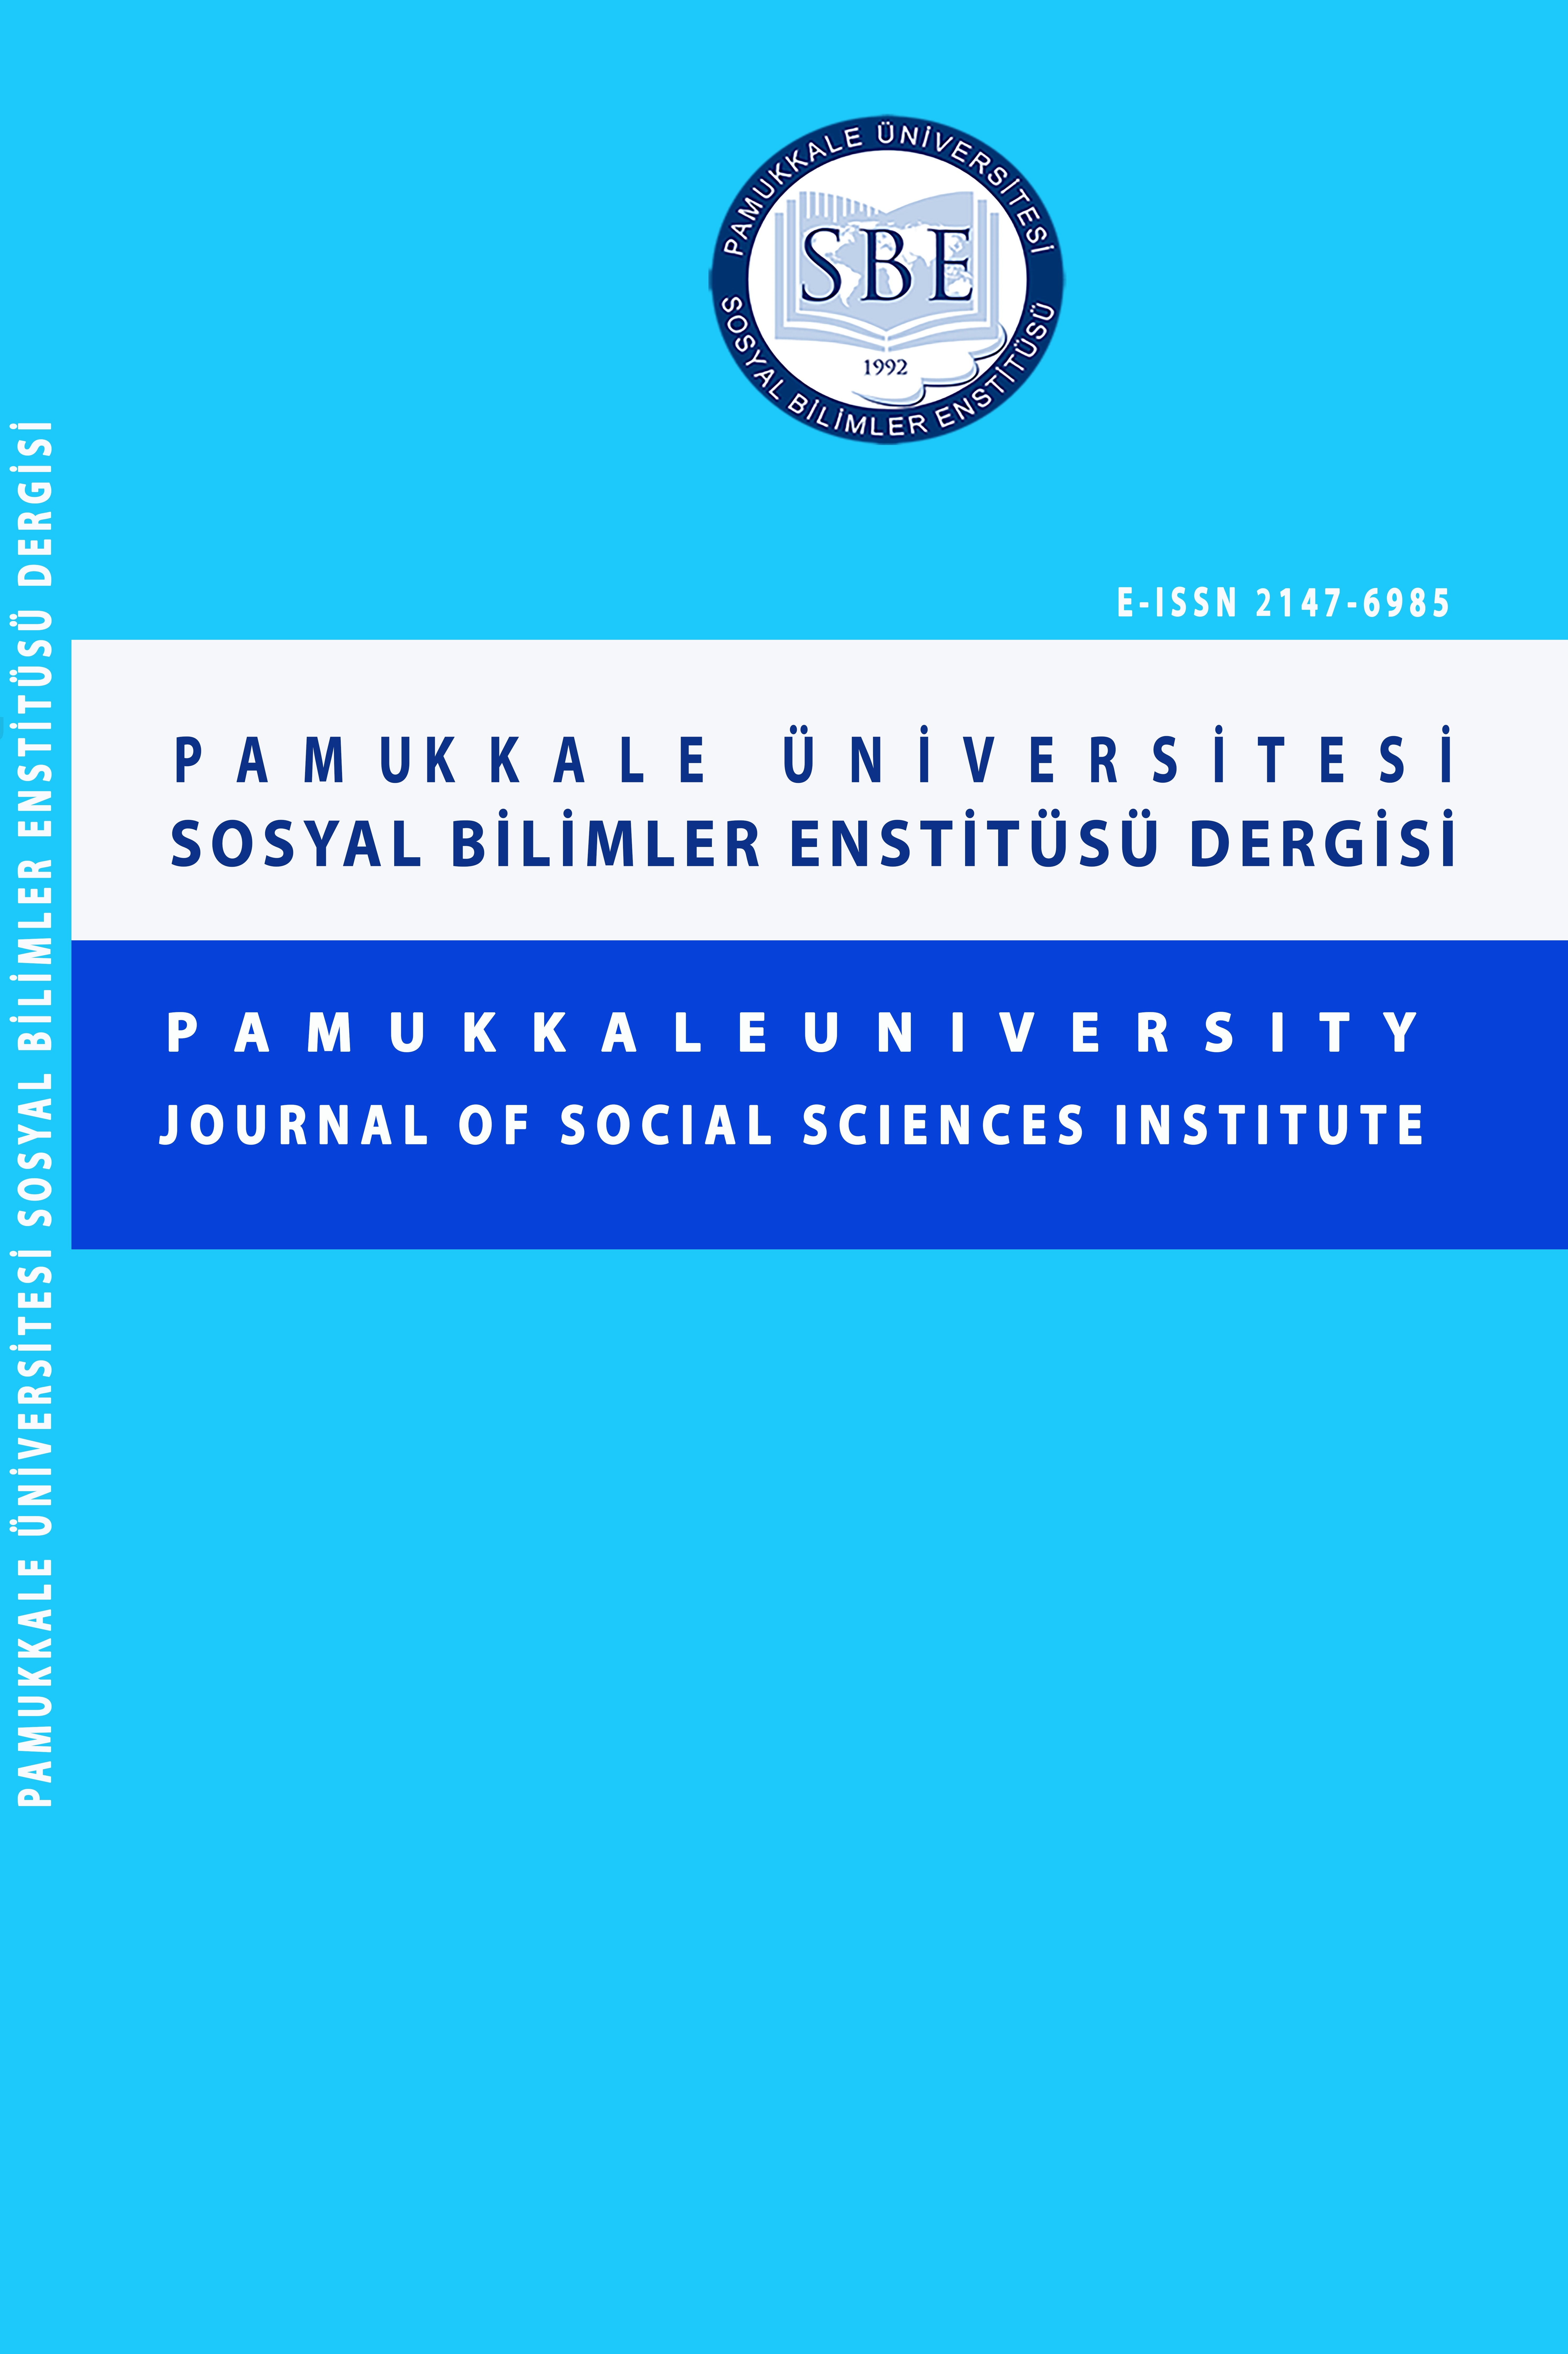 Pamukkale University Journal of Social Sciences Institute